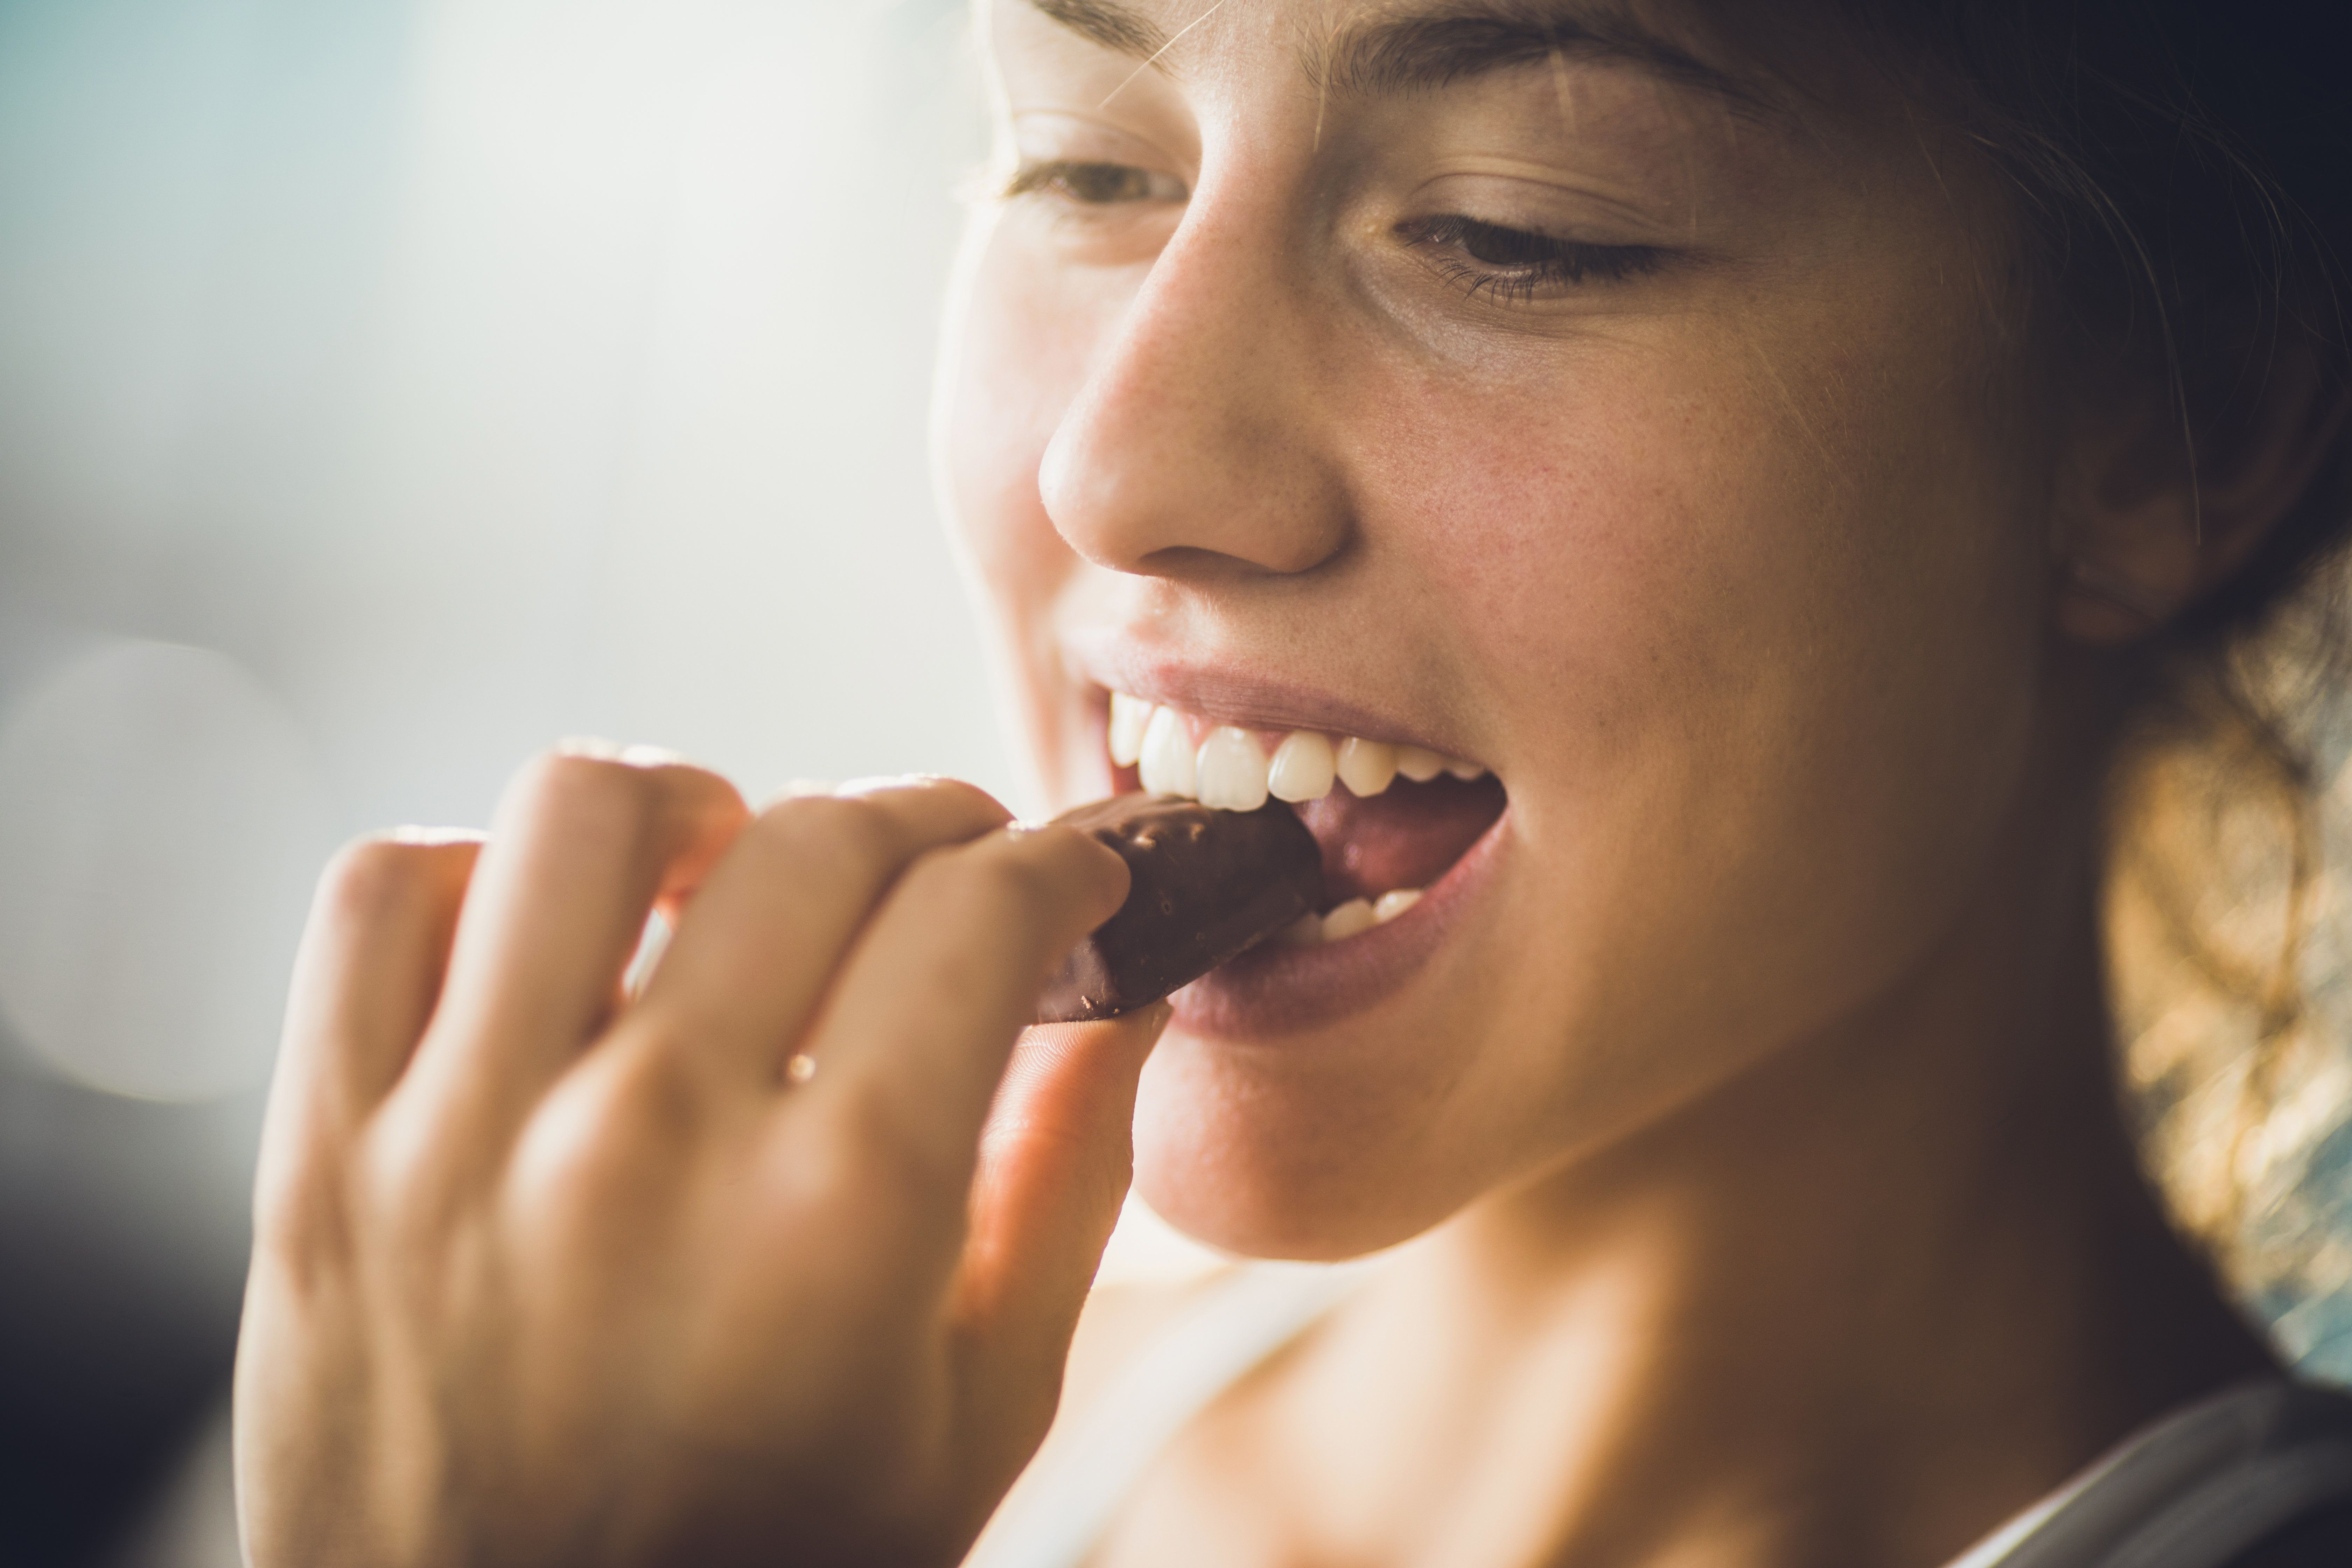 Chocolate May Protect Your Heart Health – But Only When Eaten In Small